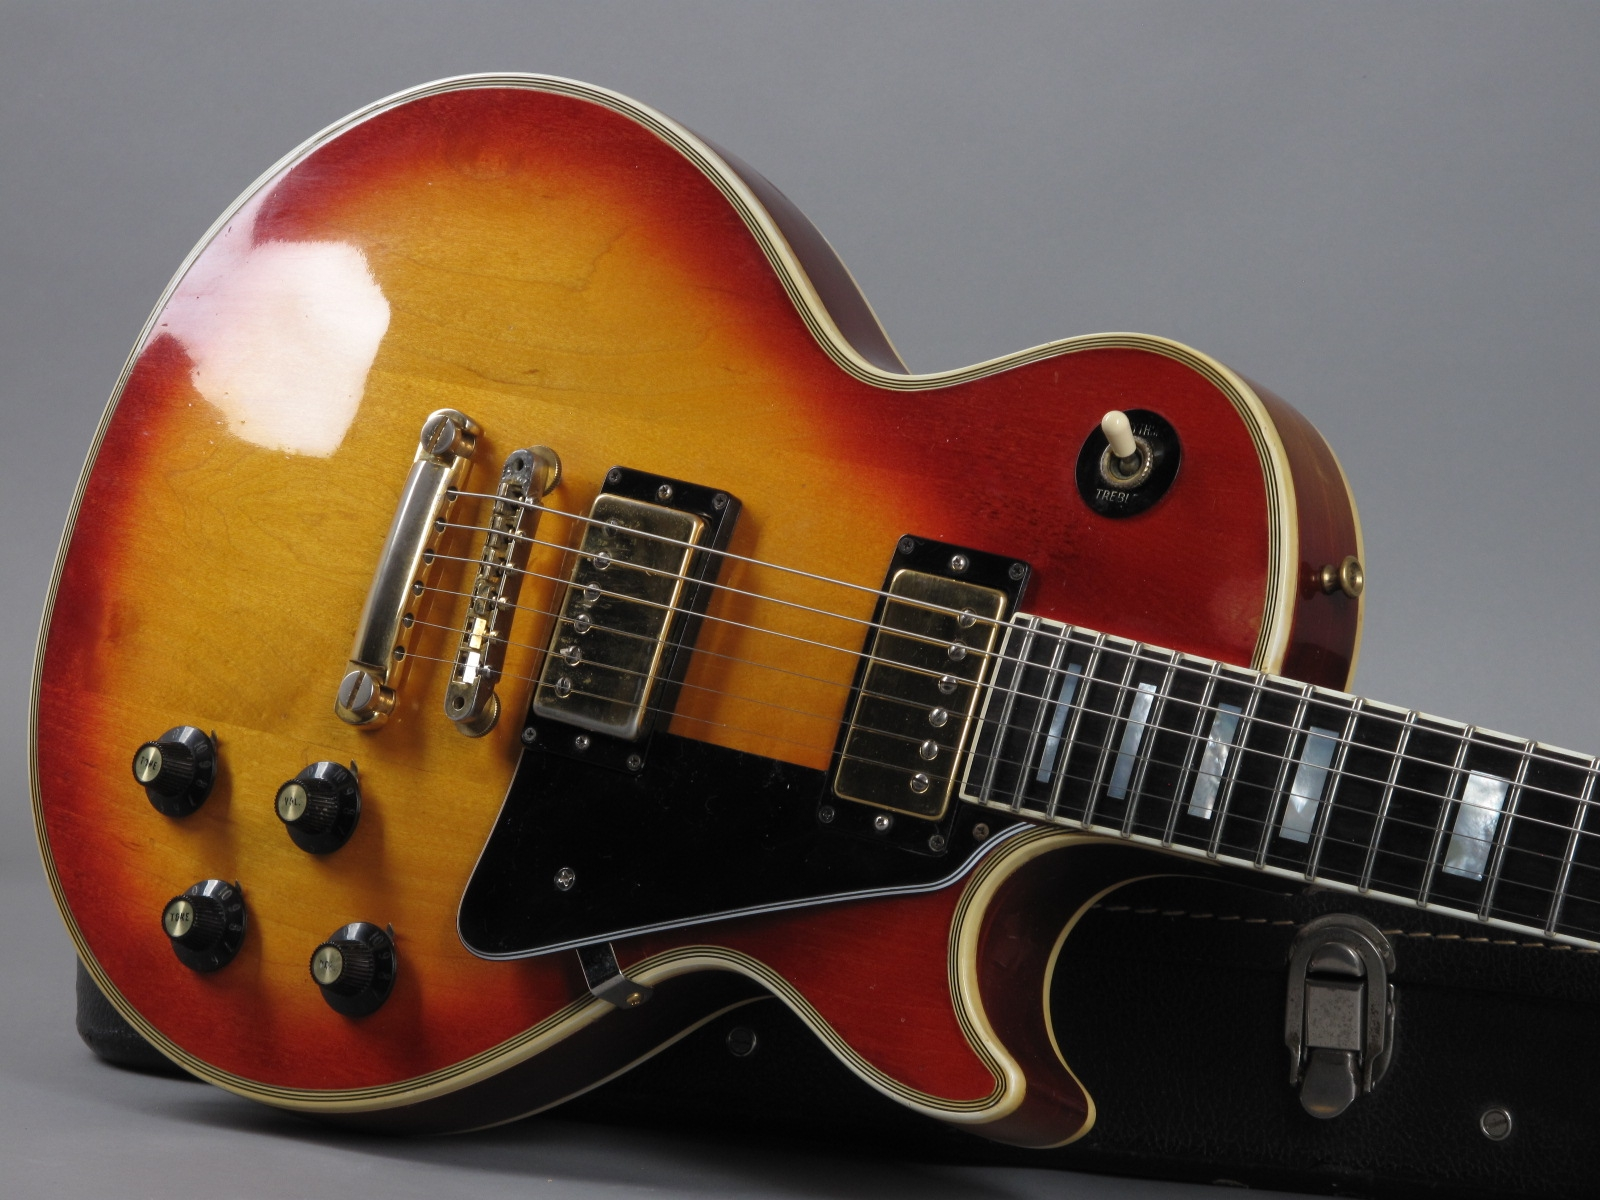 https://guitarpoint.de/app/uploads/products/1973-gibson-les-paul-custom-cherry-sunburst-5/1973-Gibson-Les-Paul-Custom-Cherry-Sunburst-417215_19.jpg